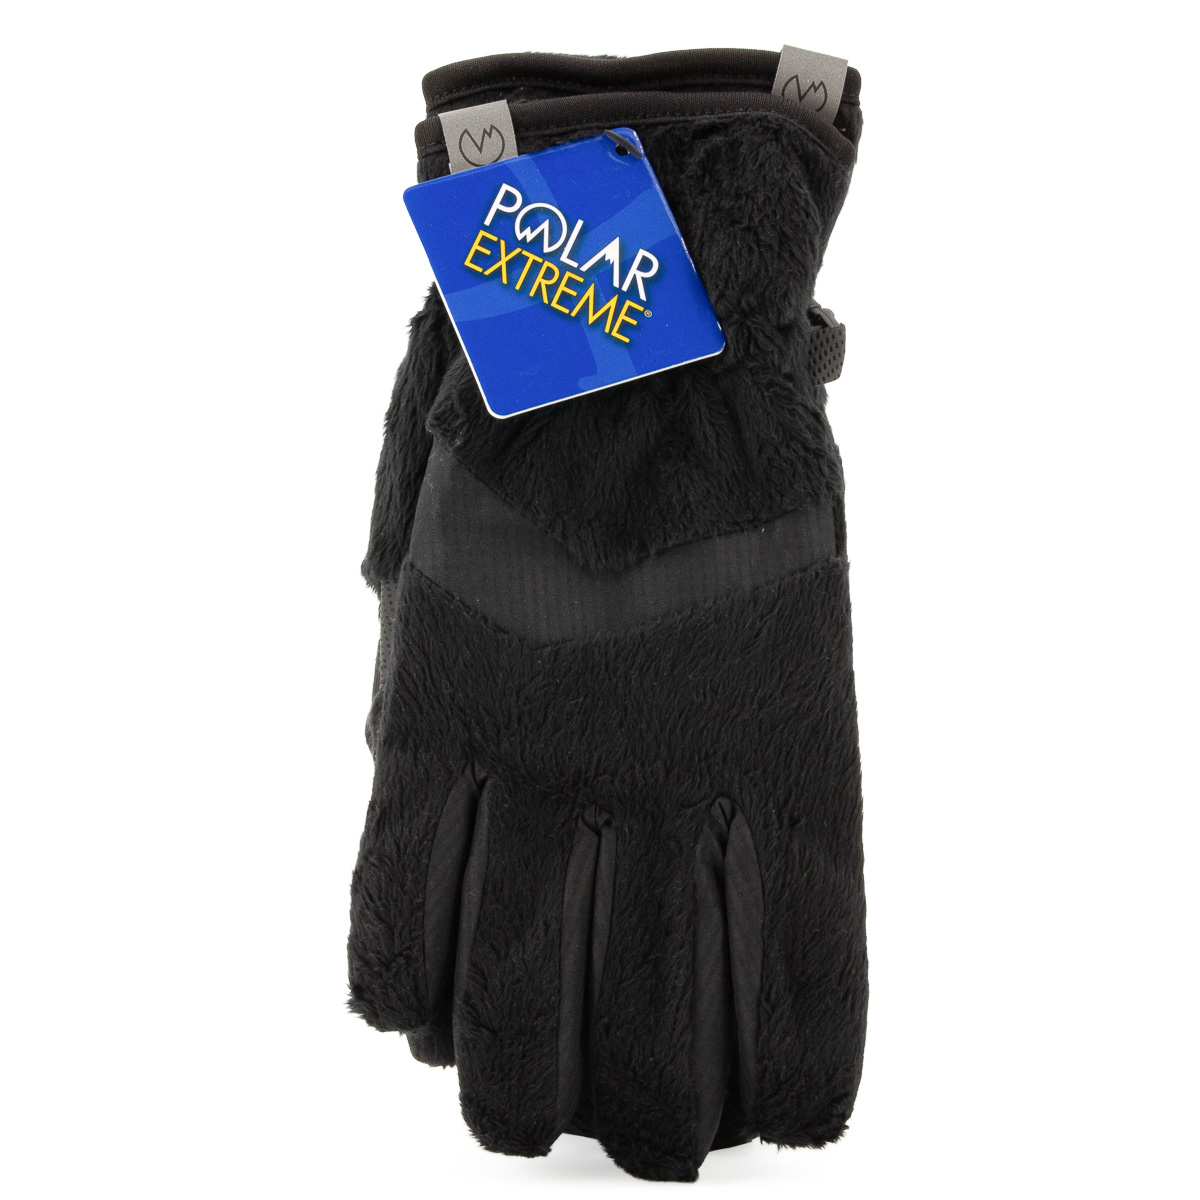 thumbnail 5 - Polar-Extreme-Womens-Touchscreen-Gloves-And-Headband-Set-For-Texting-Smartphone